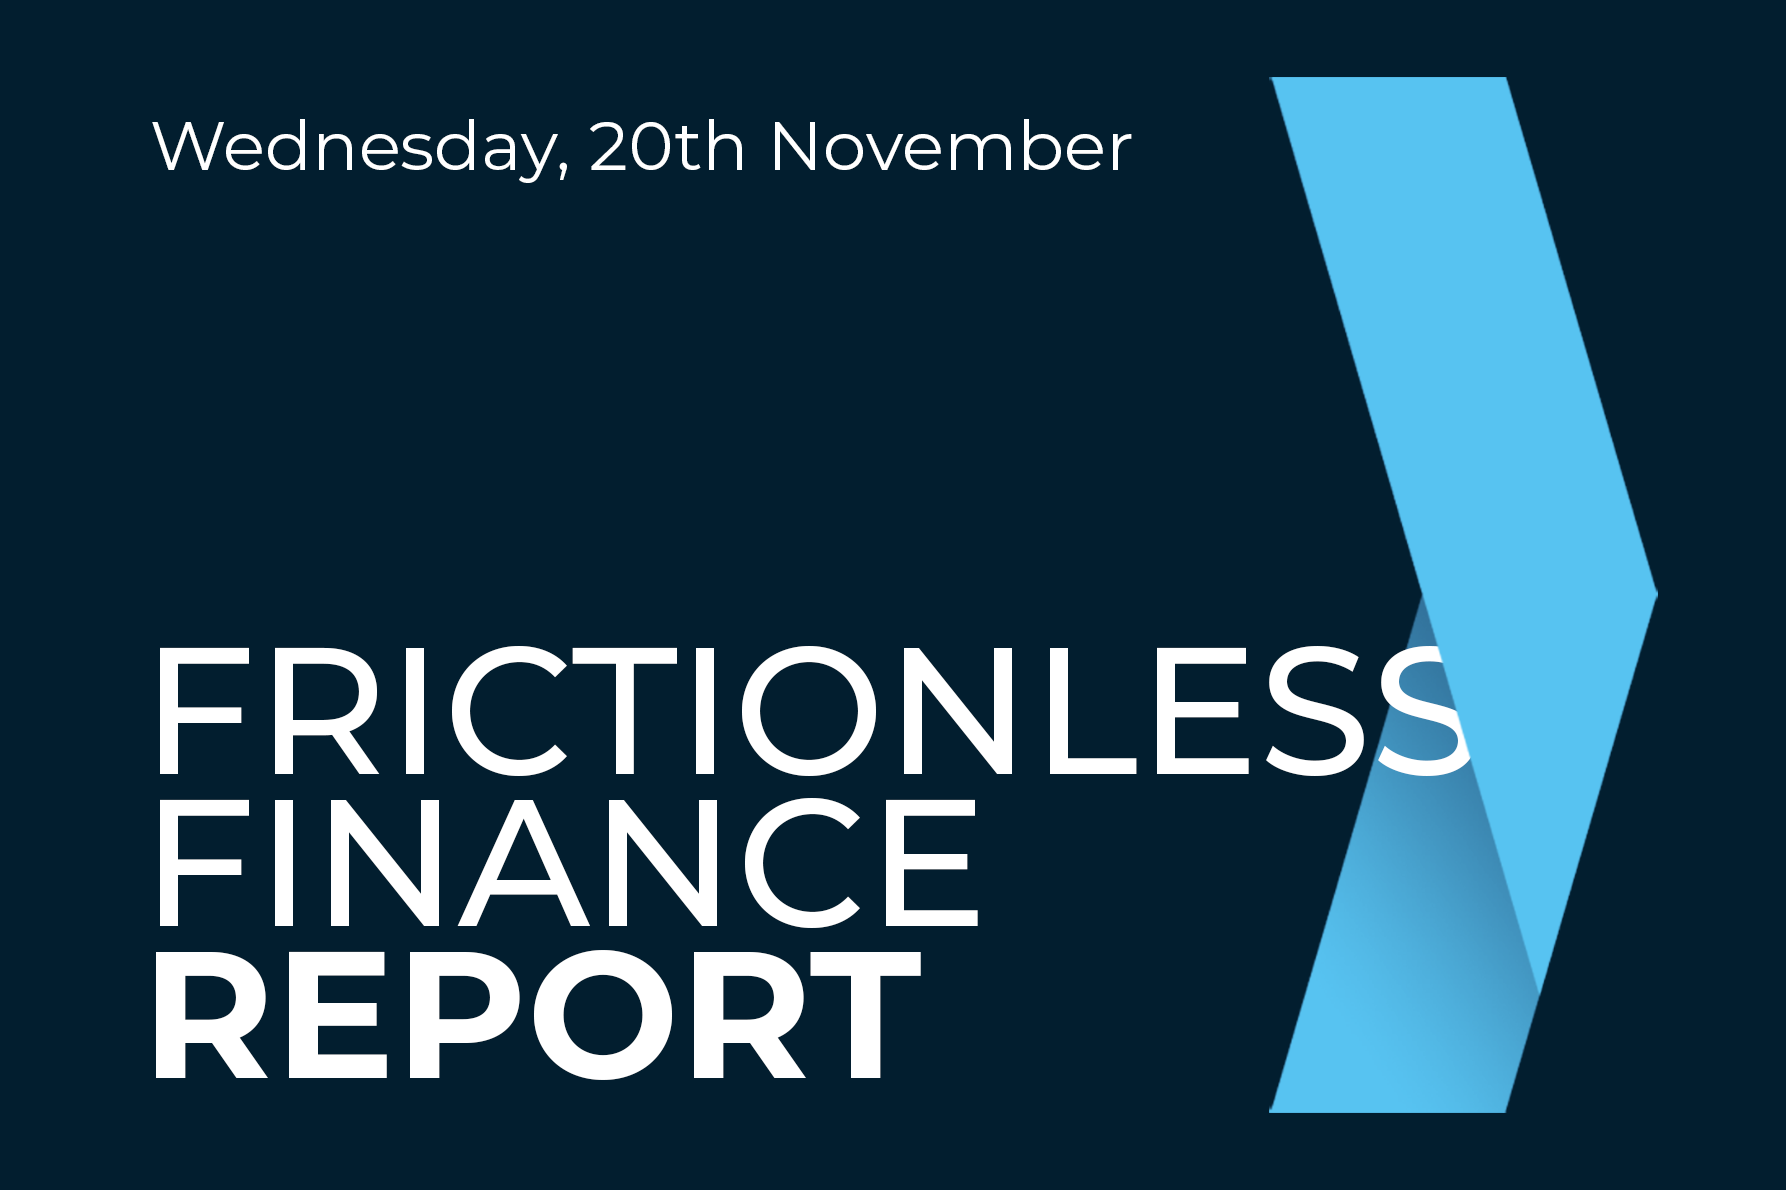 Frictionless Finance Report - Wednesday 20th November